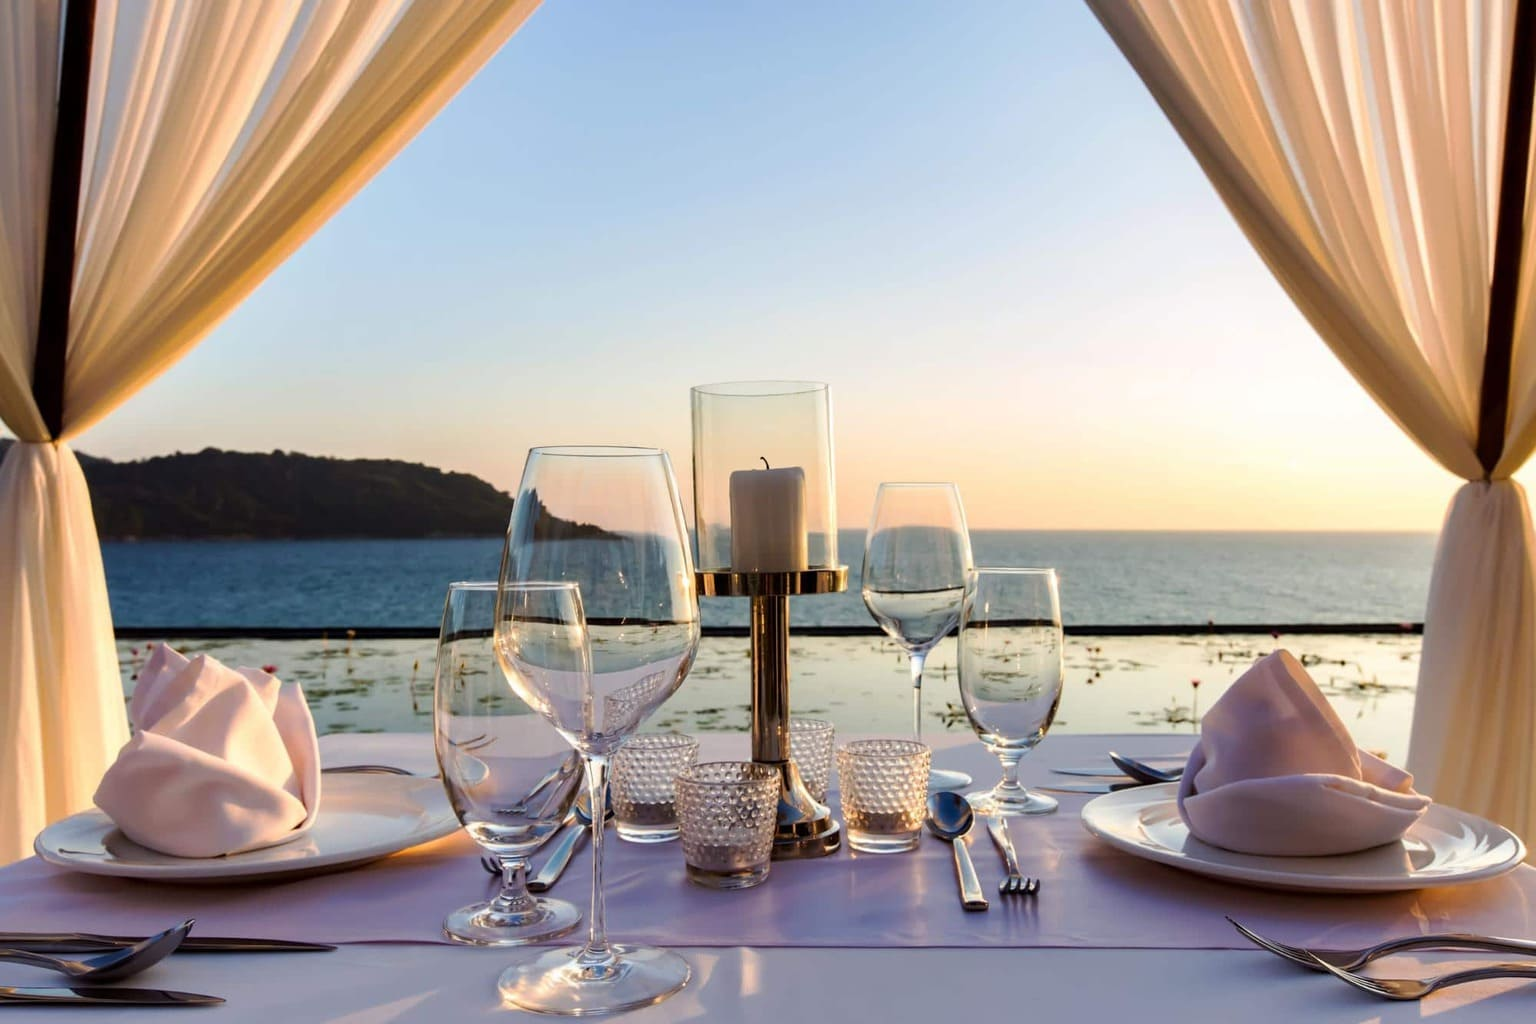 Breathtaking views and private dinners at Impiana Private Villas